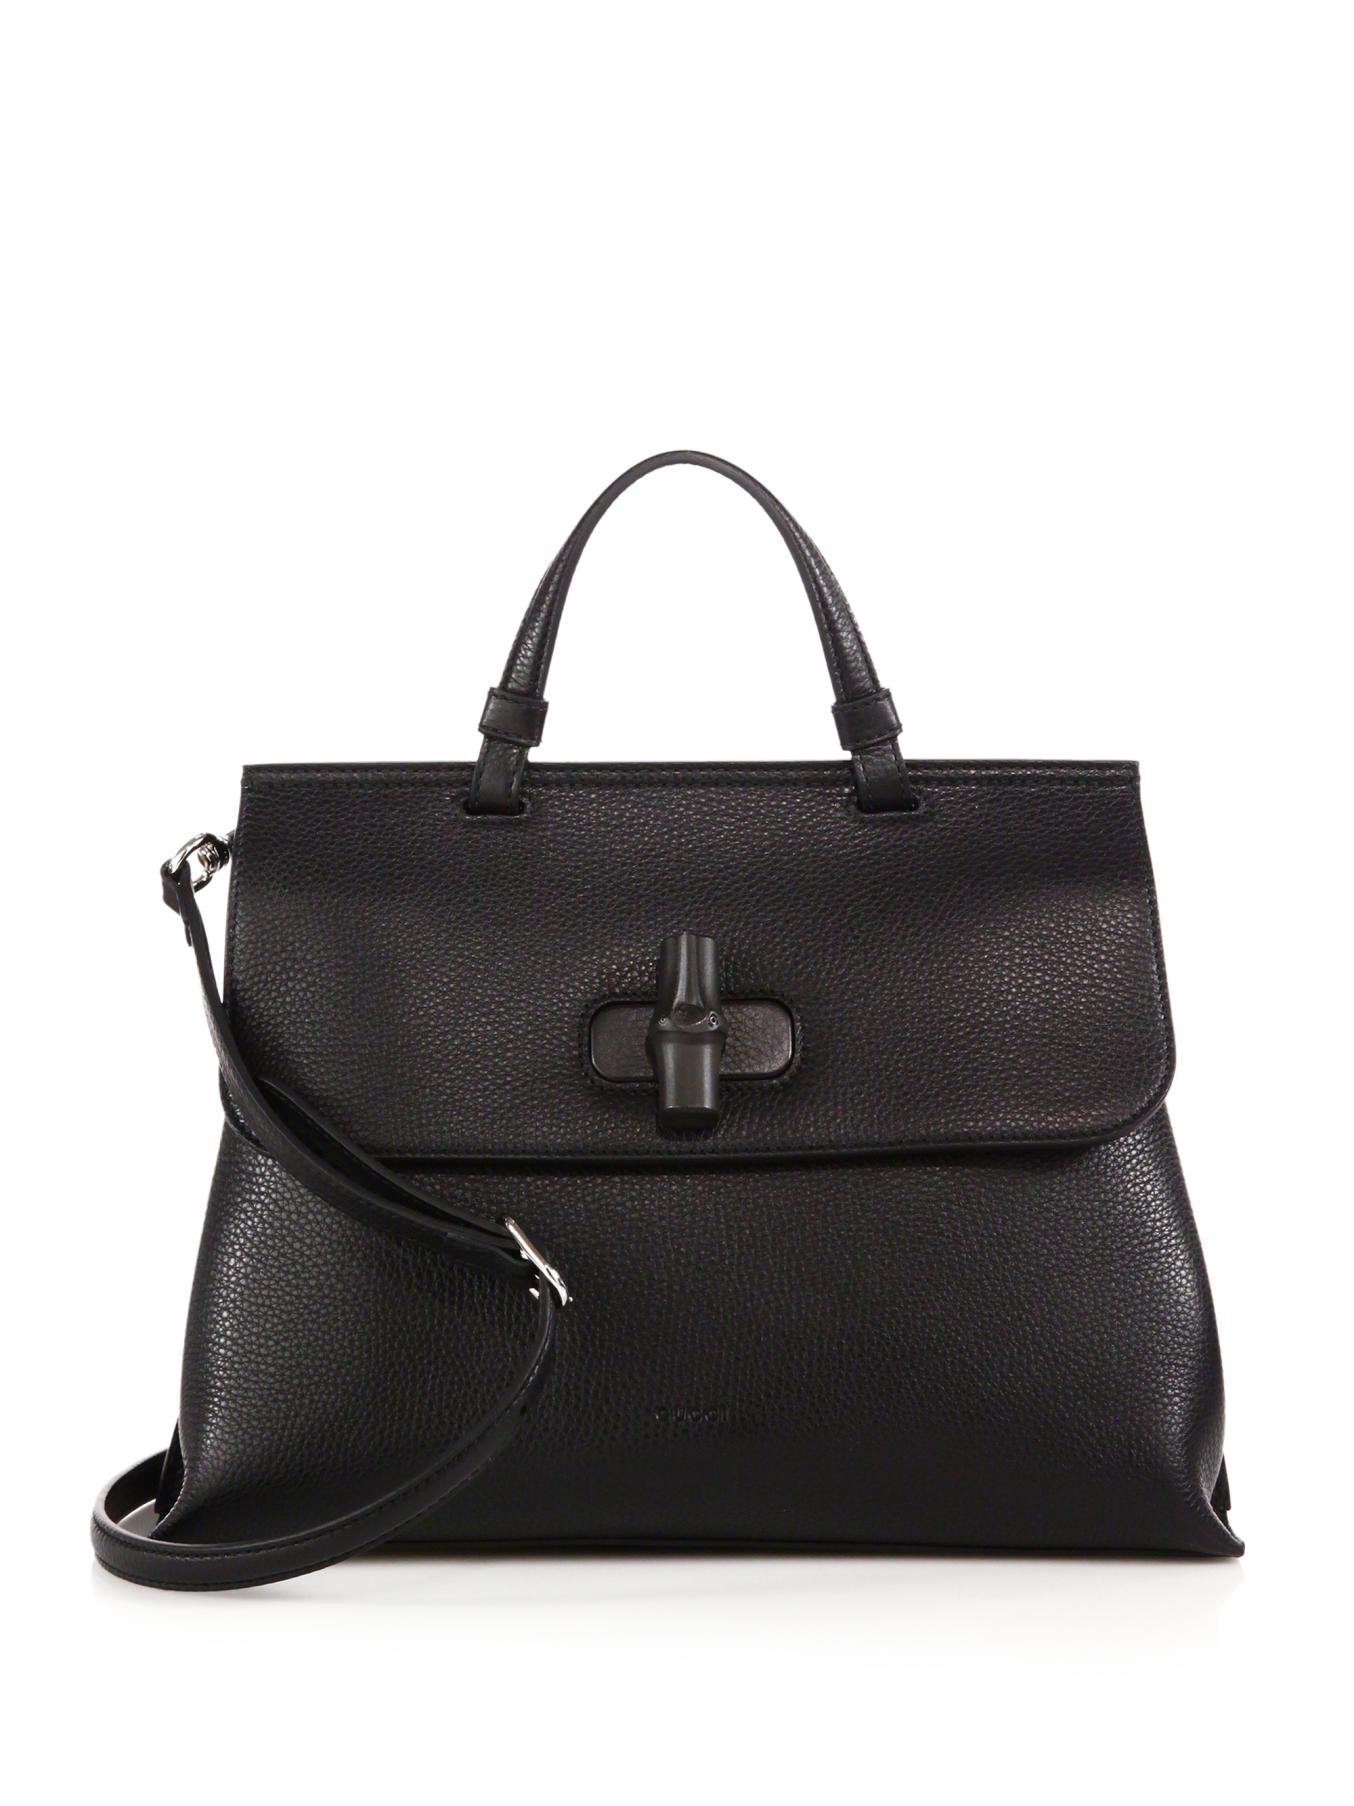 Gucci Bamboo Daily Leather Top Handle Bag In Black Lyst